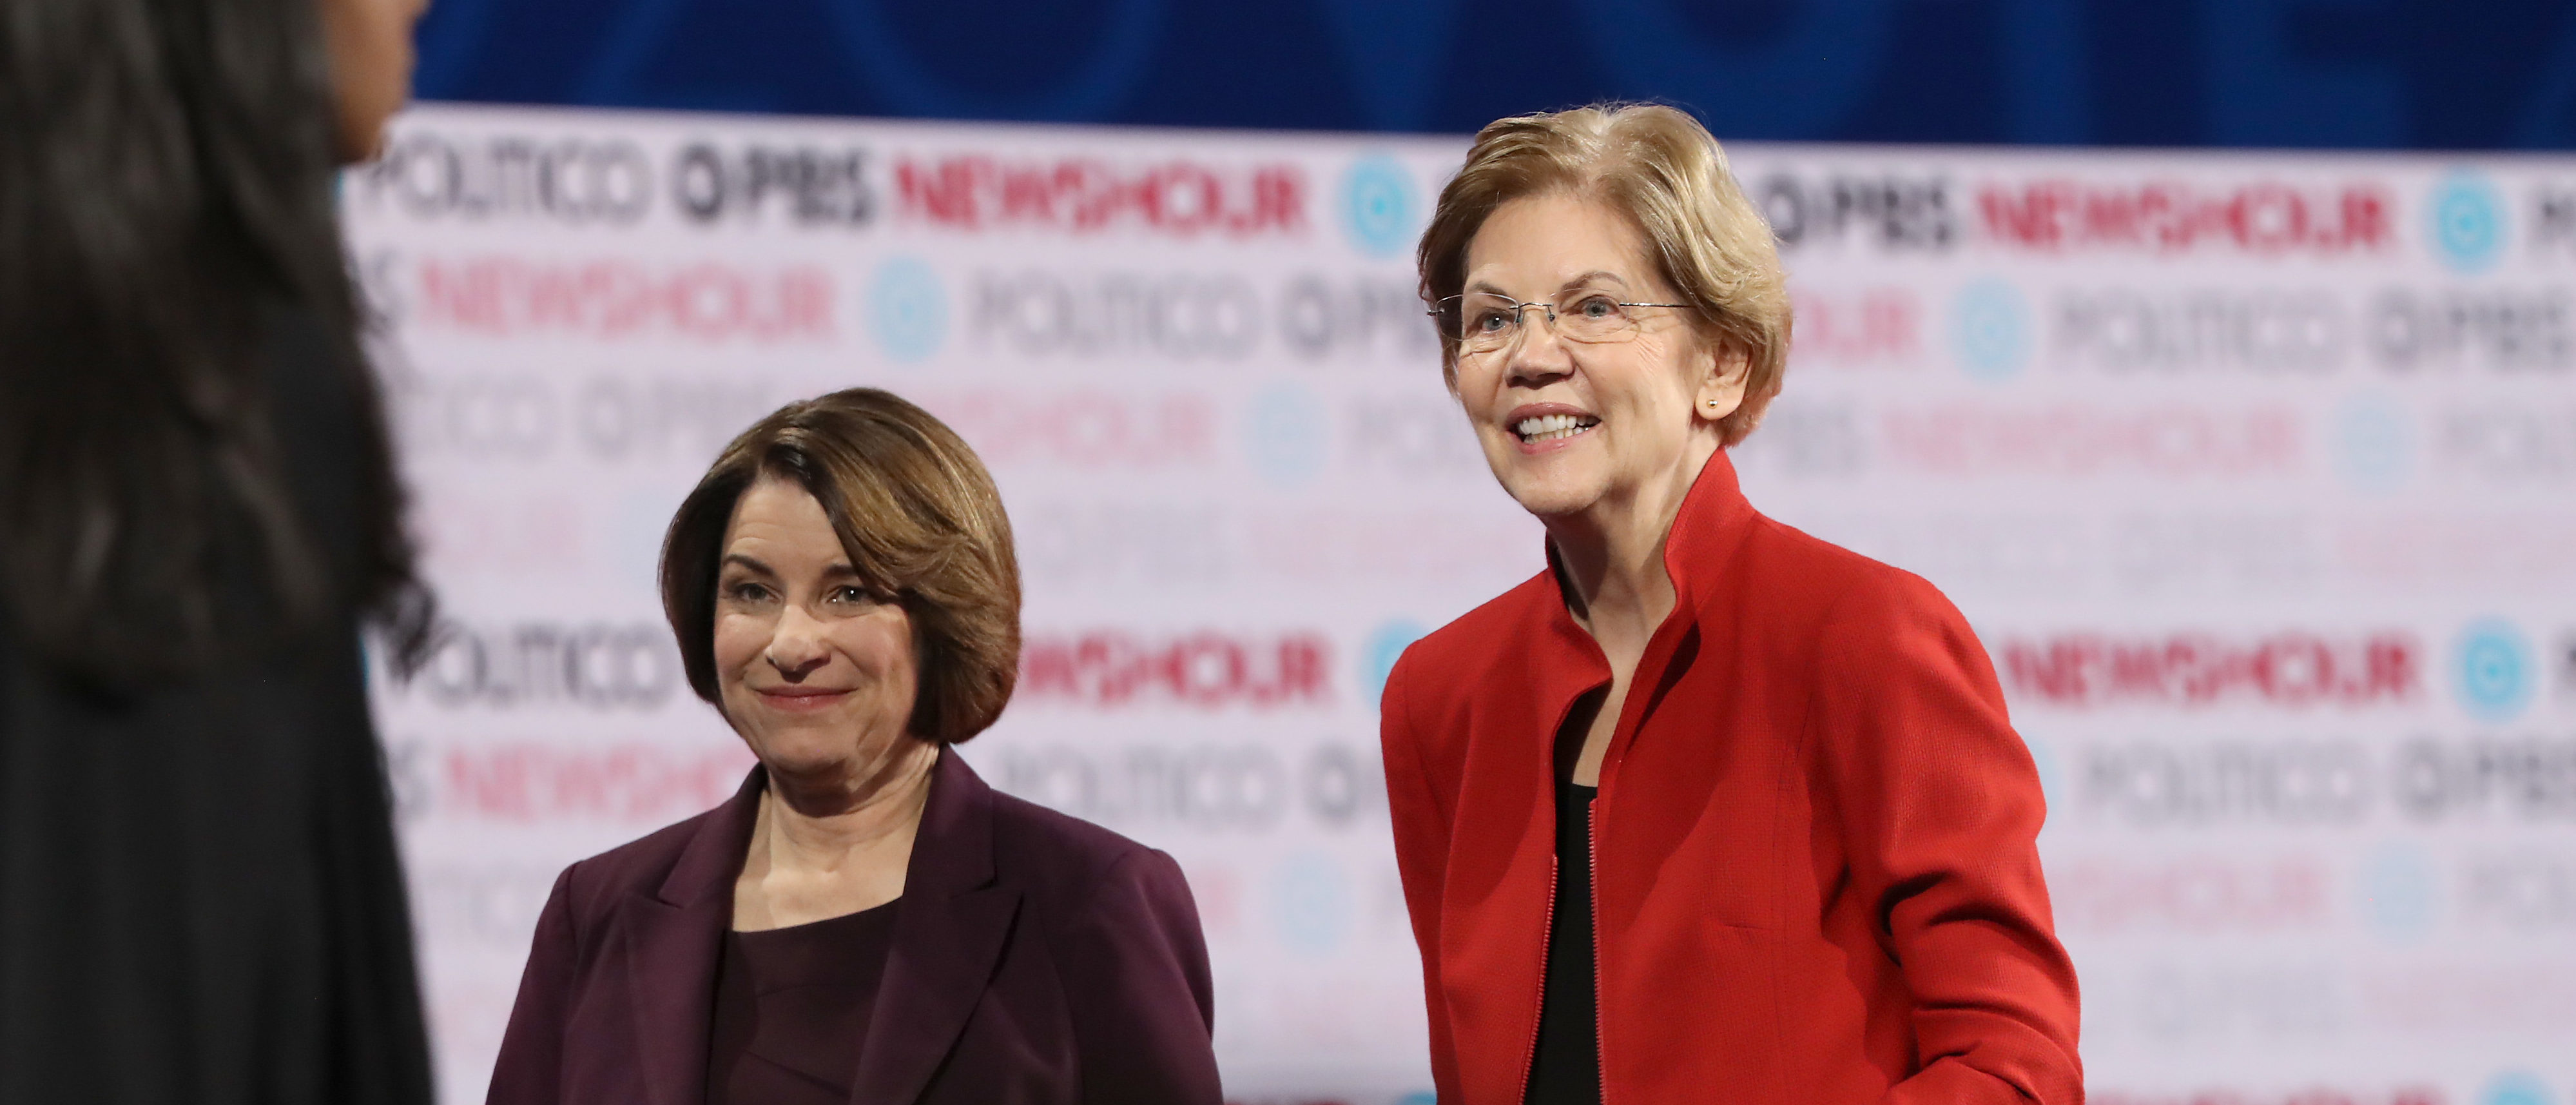 Democratic presidential candidate Sen. Elizabeth Warren (D-MA) (R) and Sen. Amy Klobuchar (D-MN)) walk on the stage after the Democratic presidential primary debate at Loyola Marymount University on December 19, 2019 in Los Angeles, California. (Justin Sullivan/Getty Images)